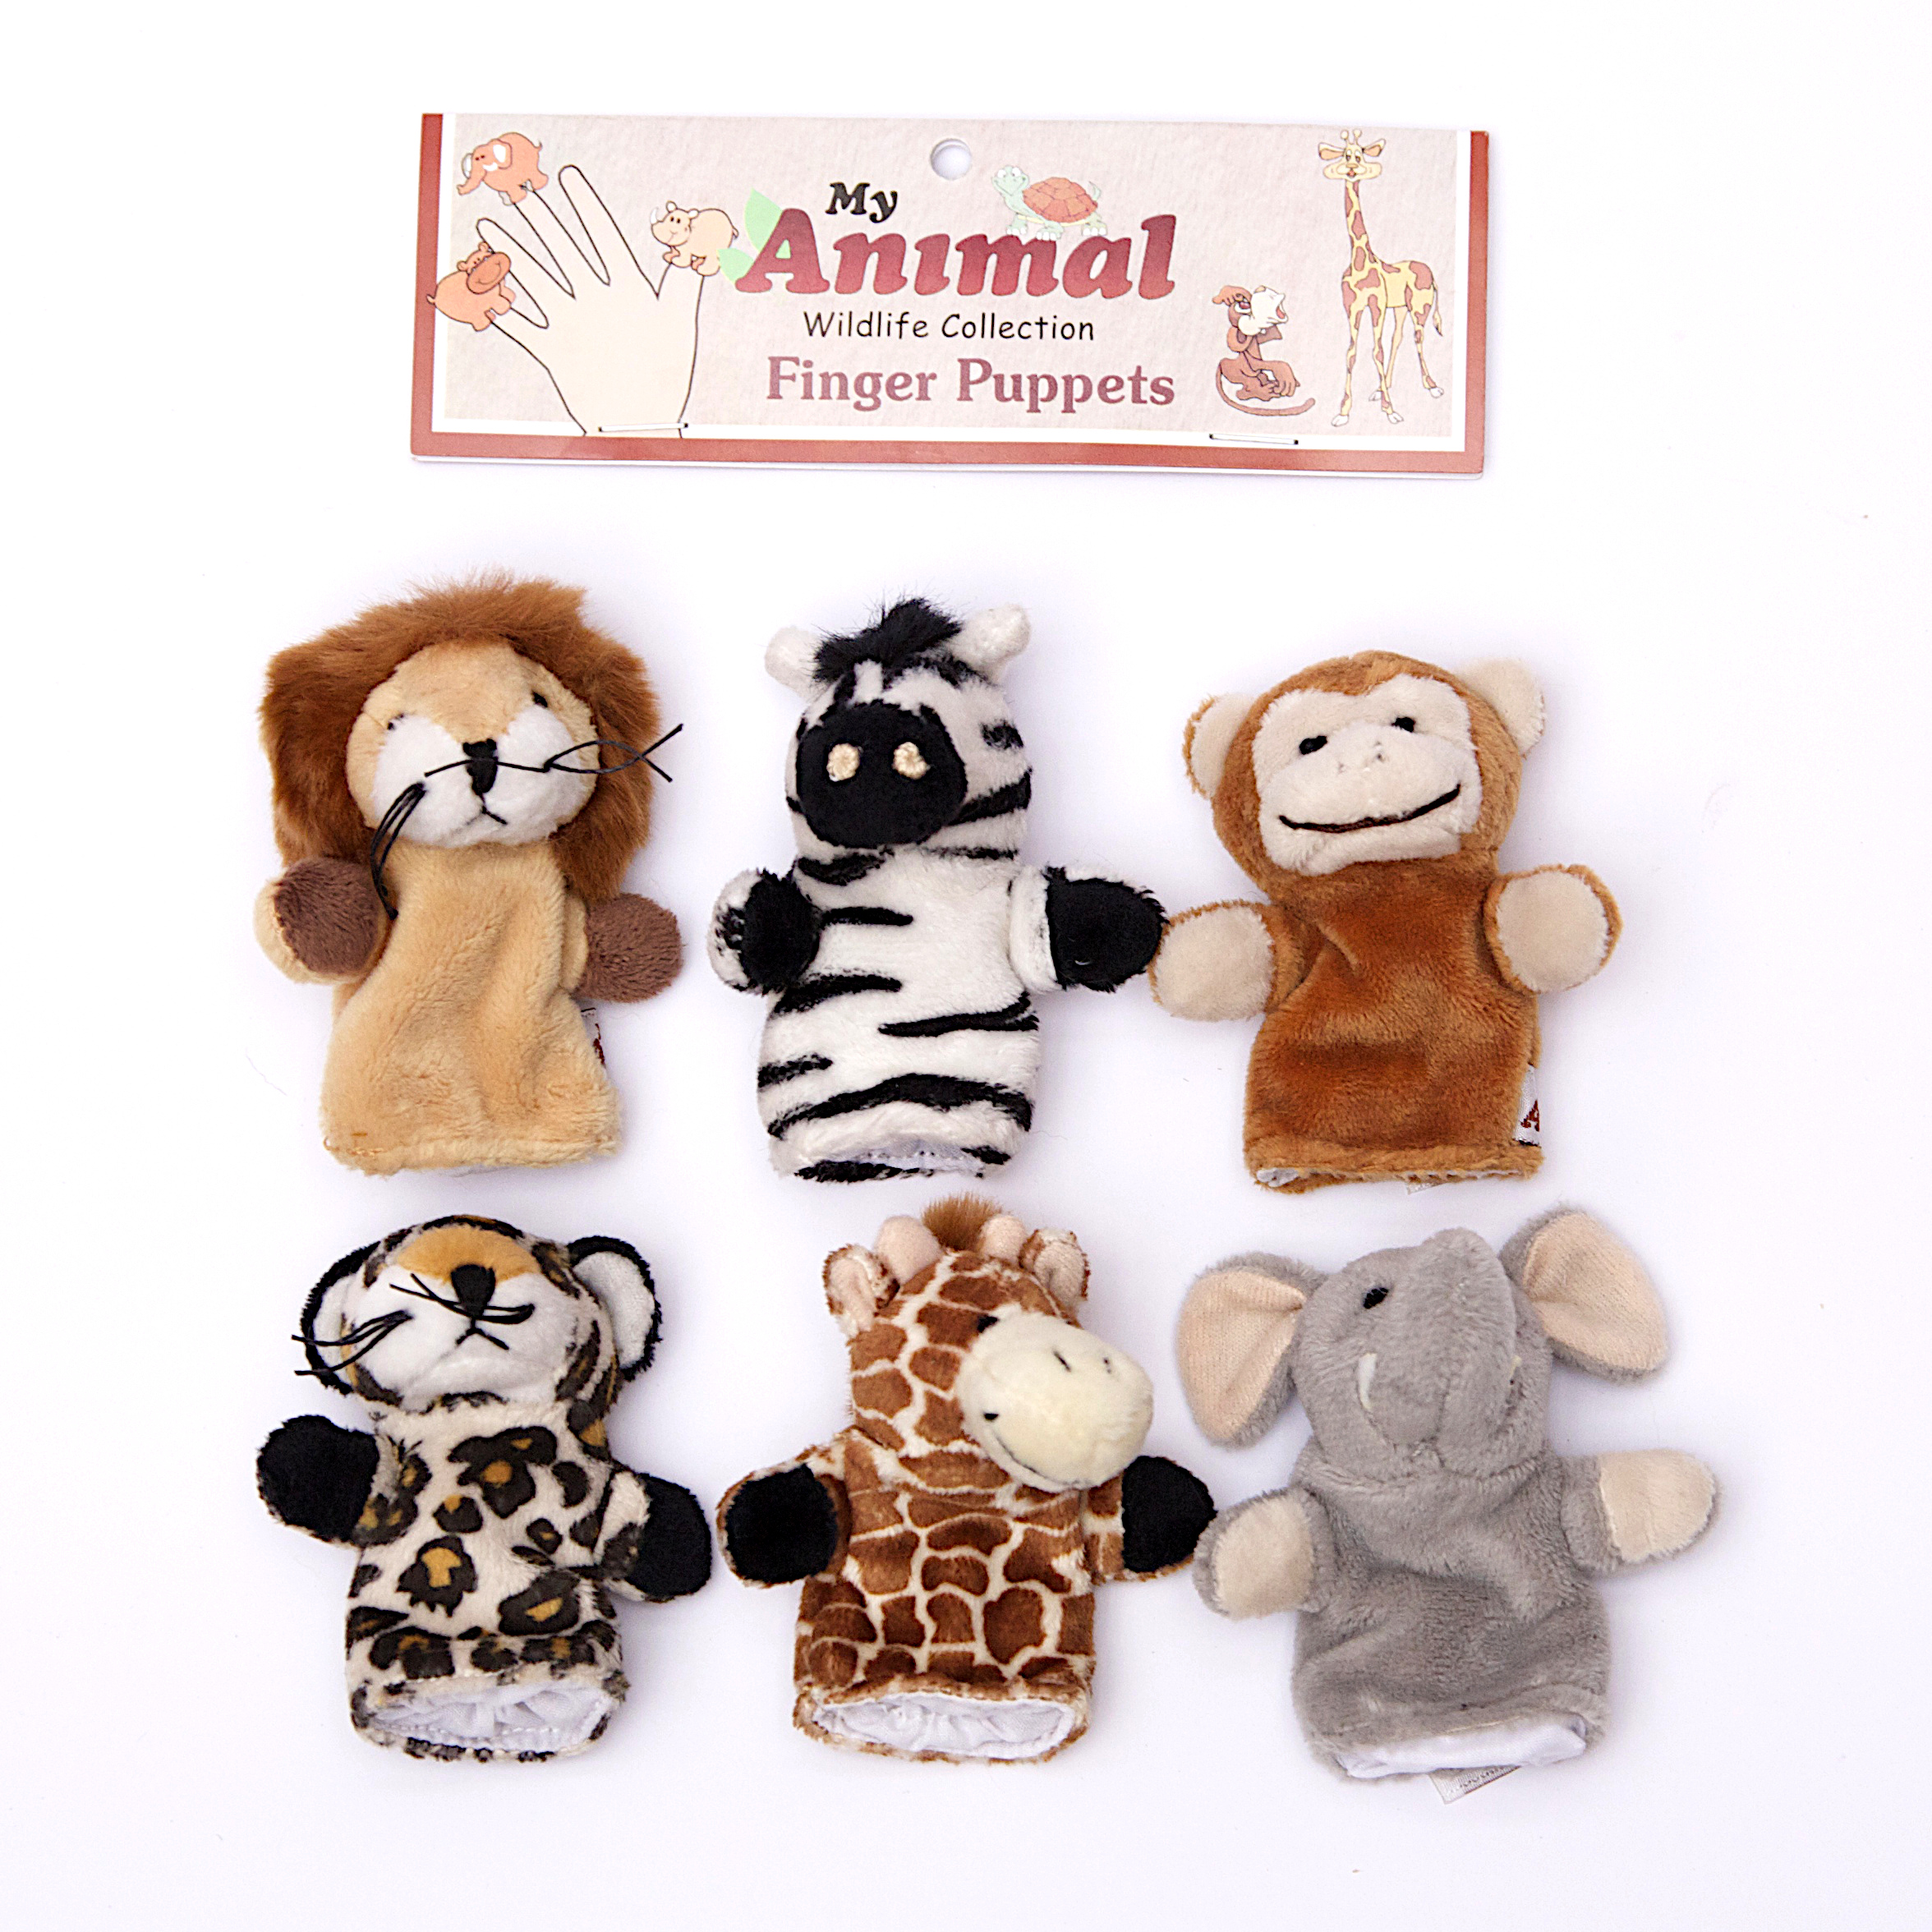 My Finger puppet baby 2 pack